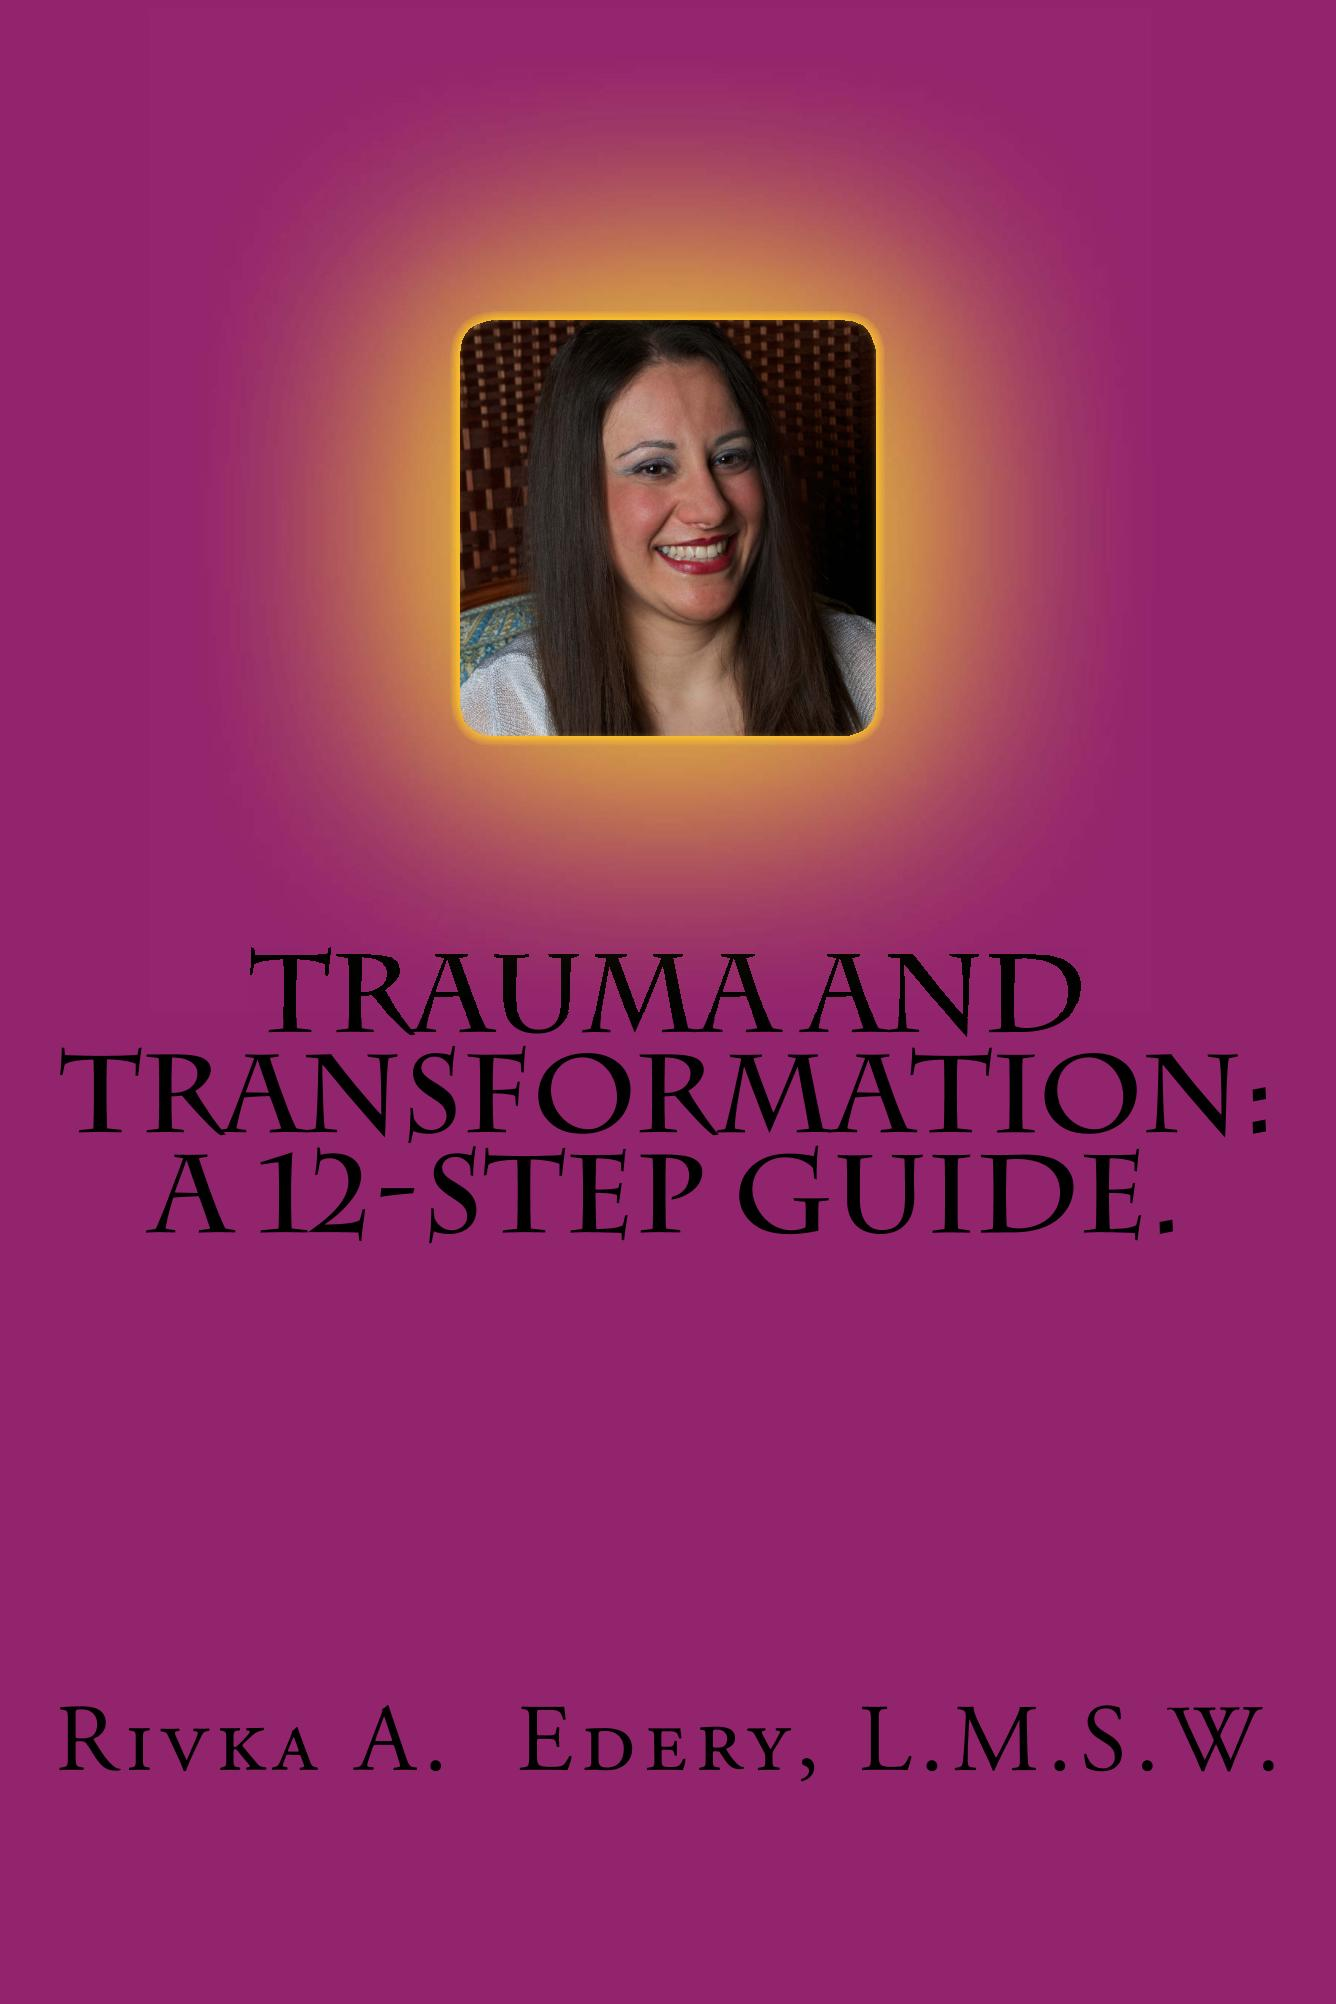 PODCASTS of Trauma And Transformation: A 12-Step Guide - Rivka Edery, M.S.W., L.C.S.W.